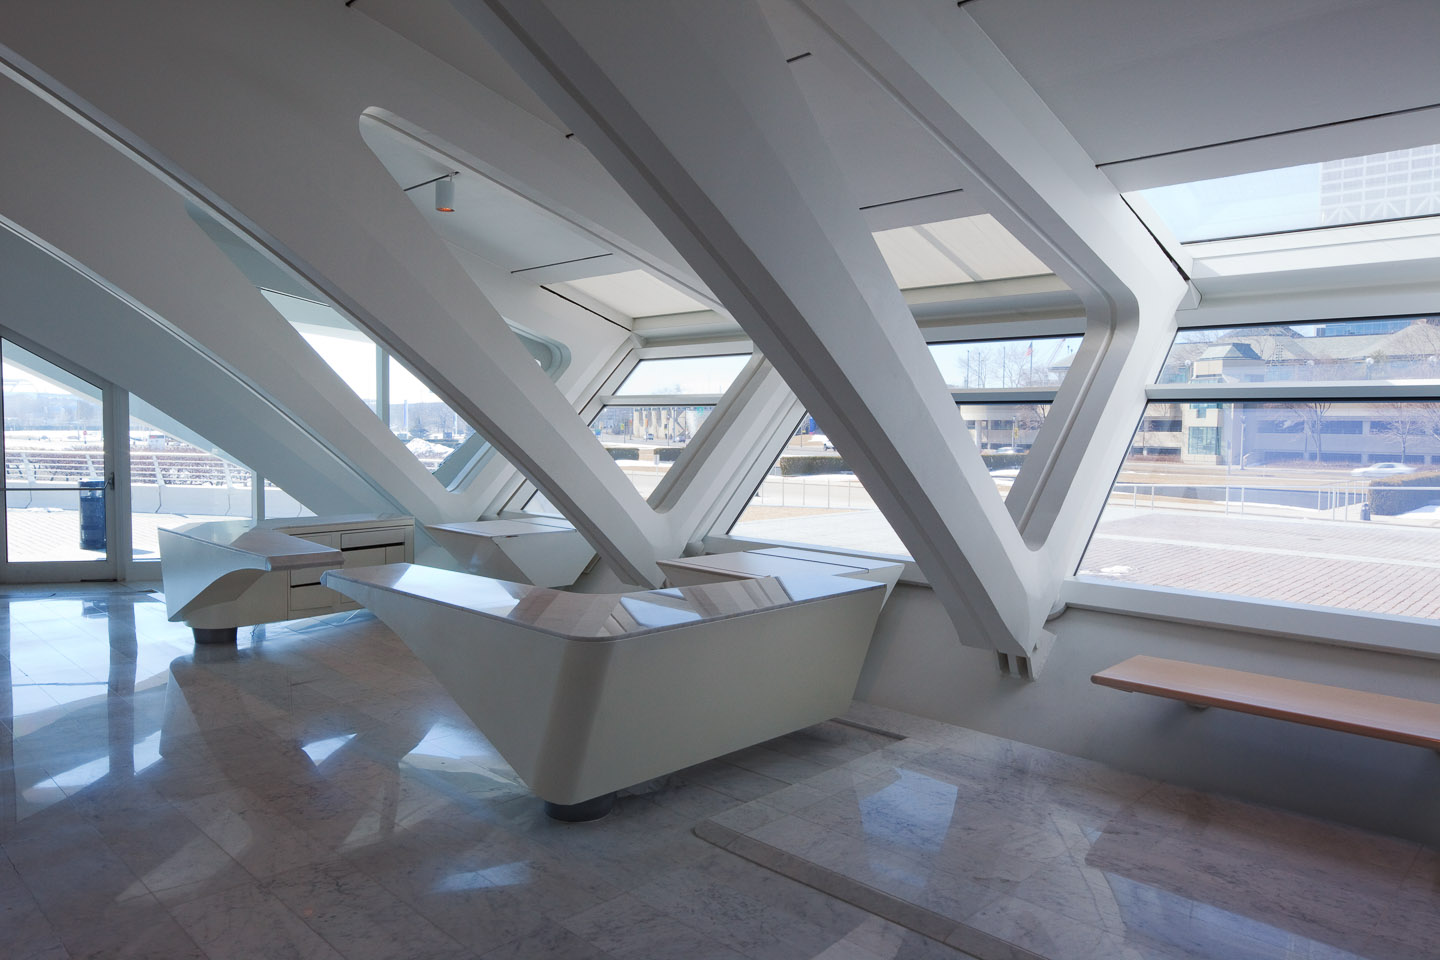 some interior structural bays at the Milwaukee Art Museum, designed by Santiago Calatrava, photographed by Jacob Rosenfeld